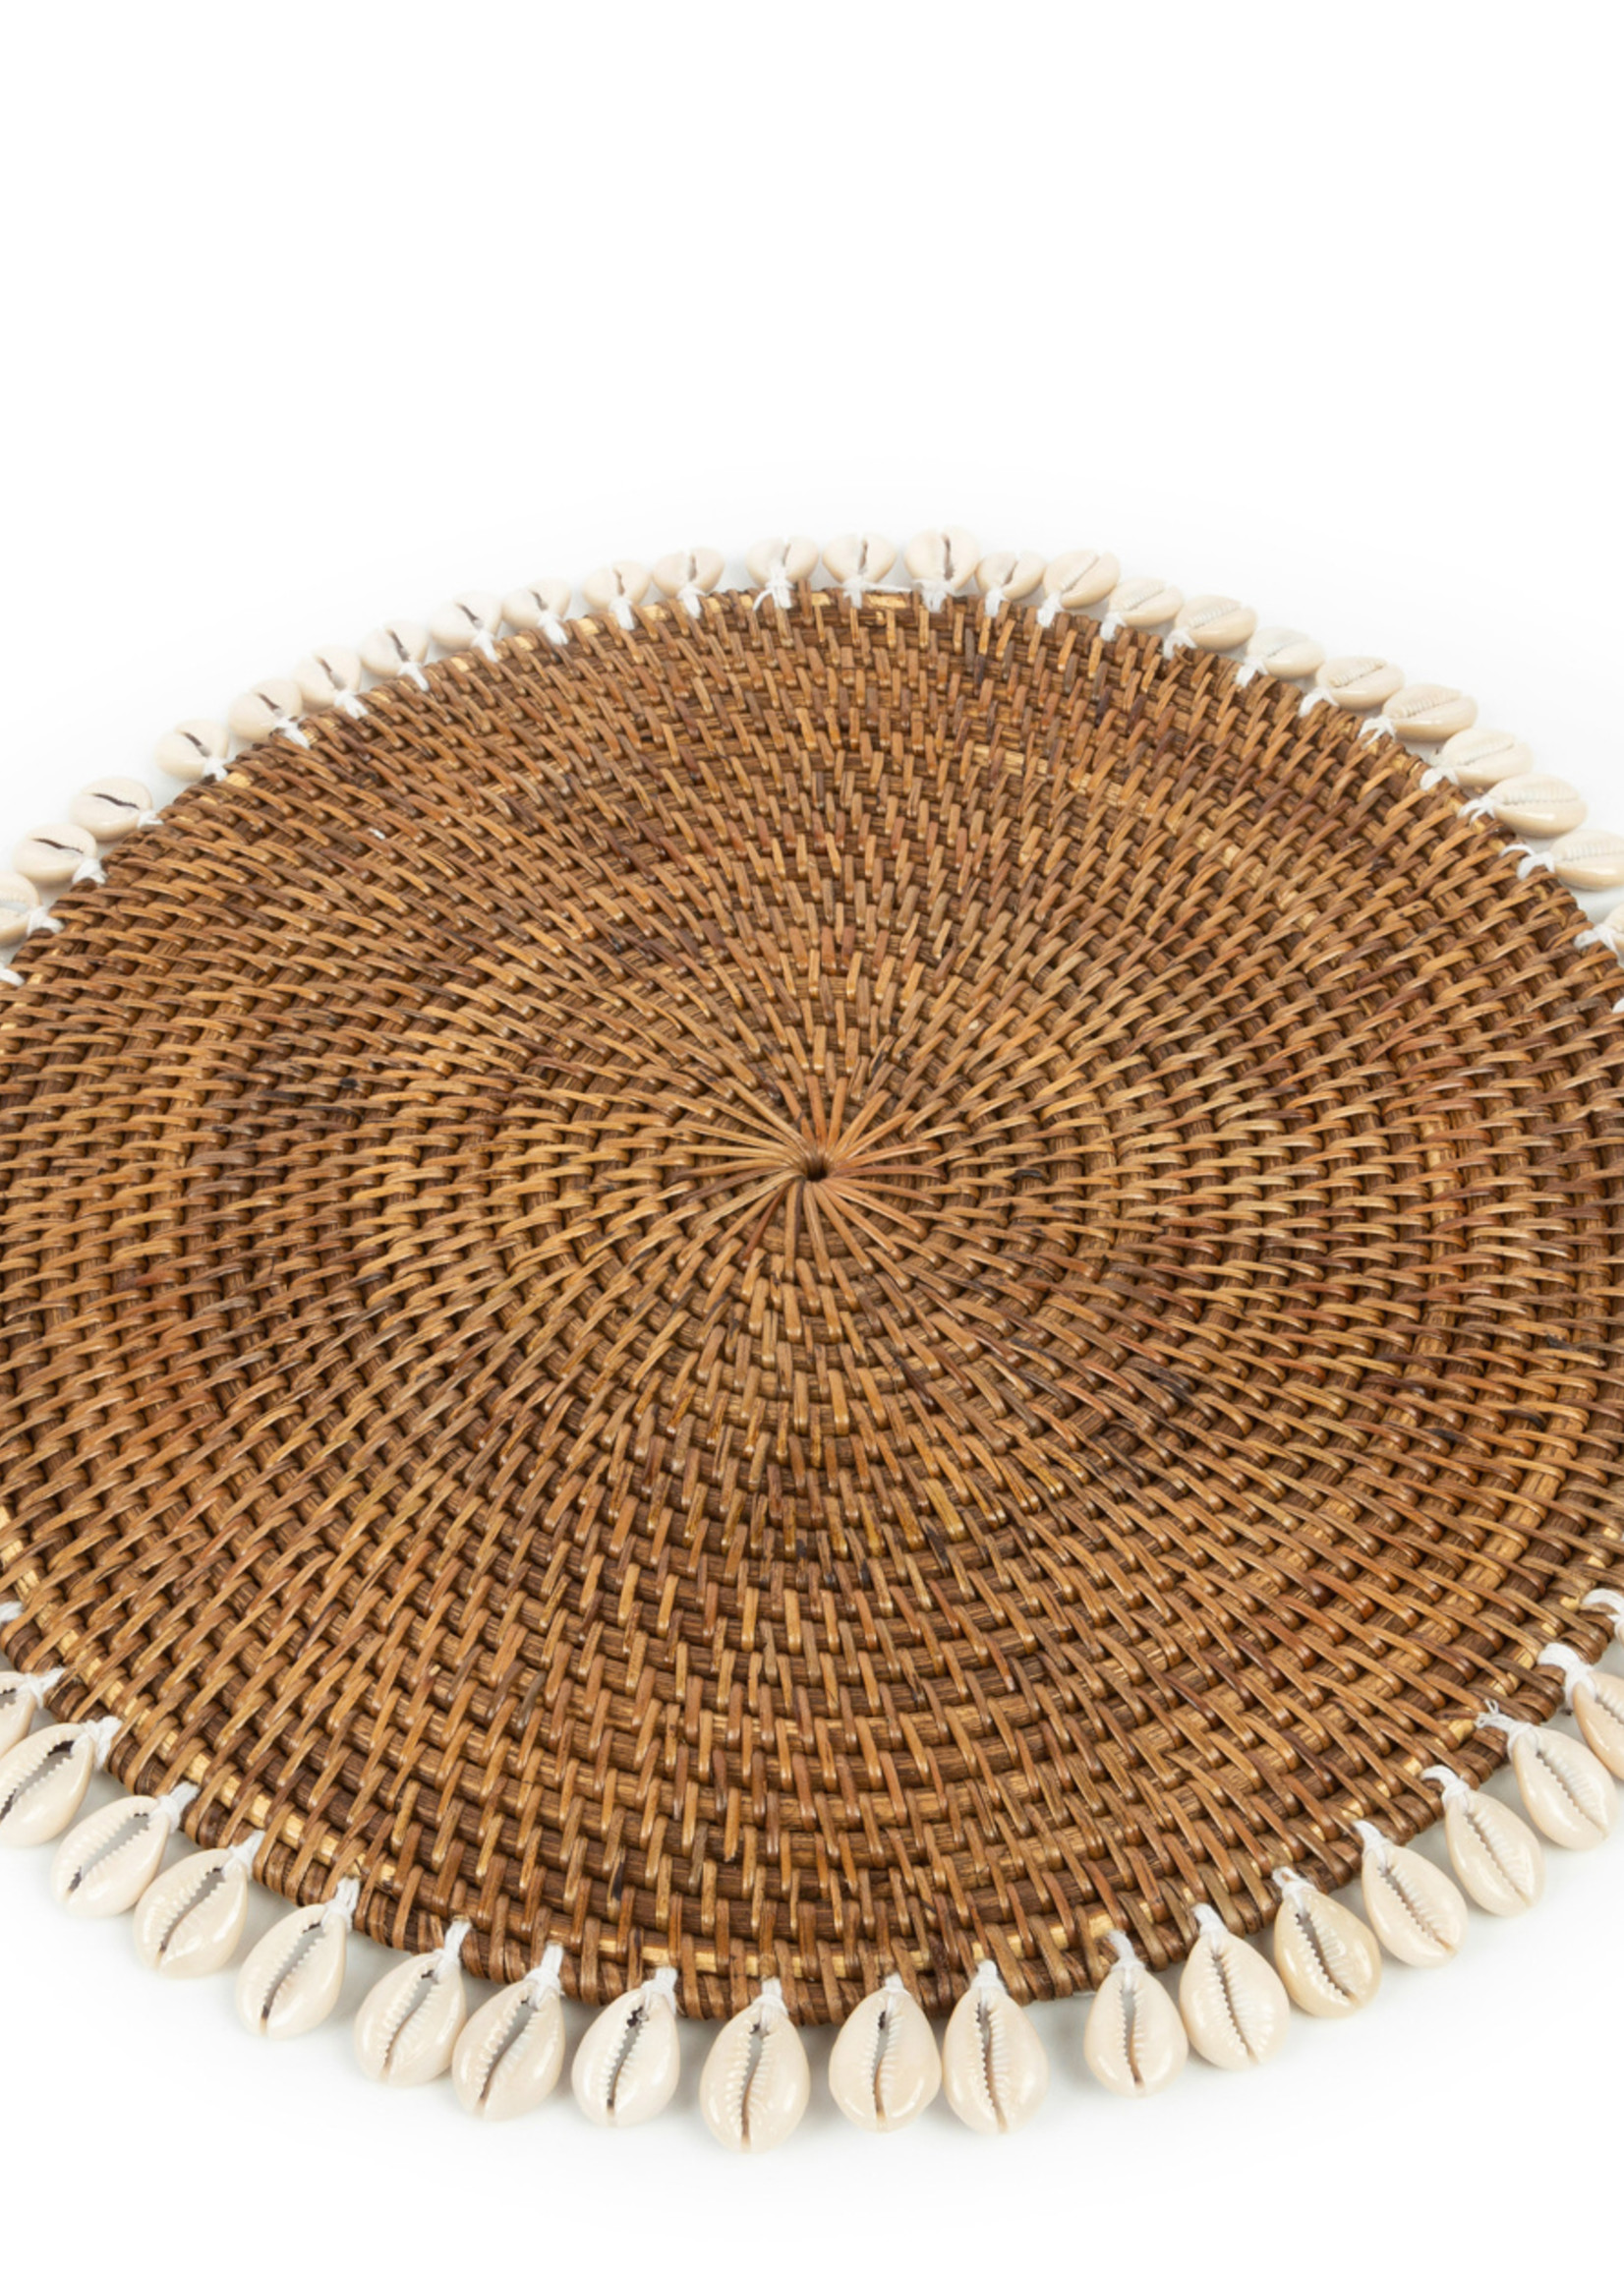 The Colonial Shell Placemat - Natural Brown